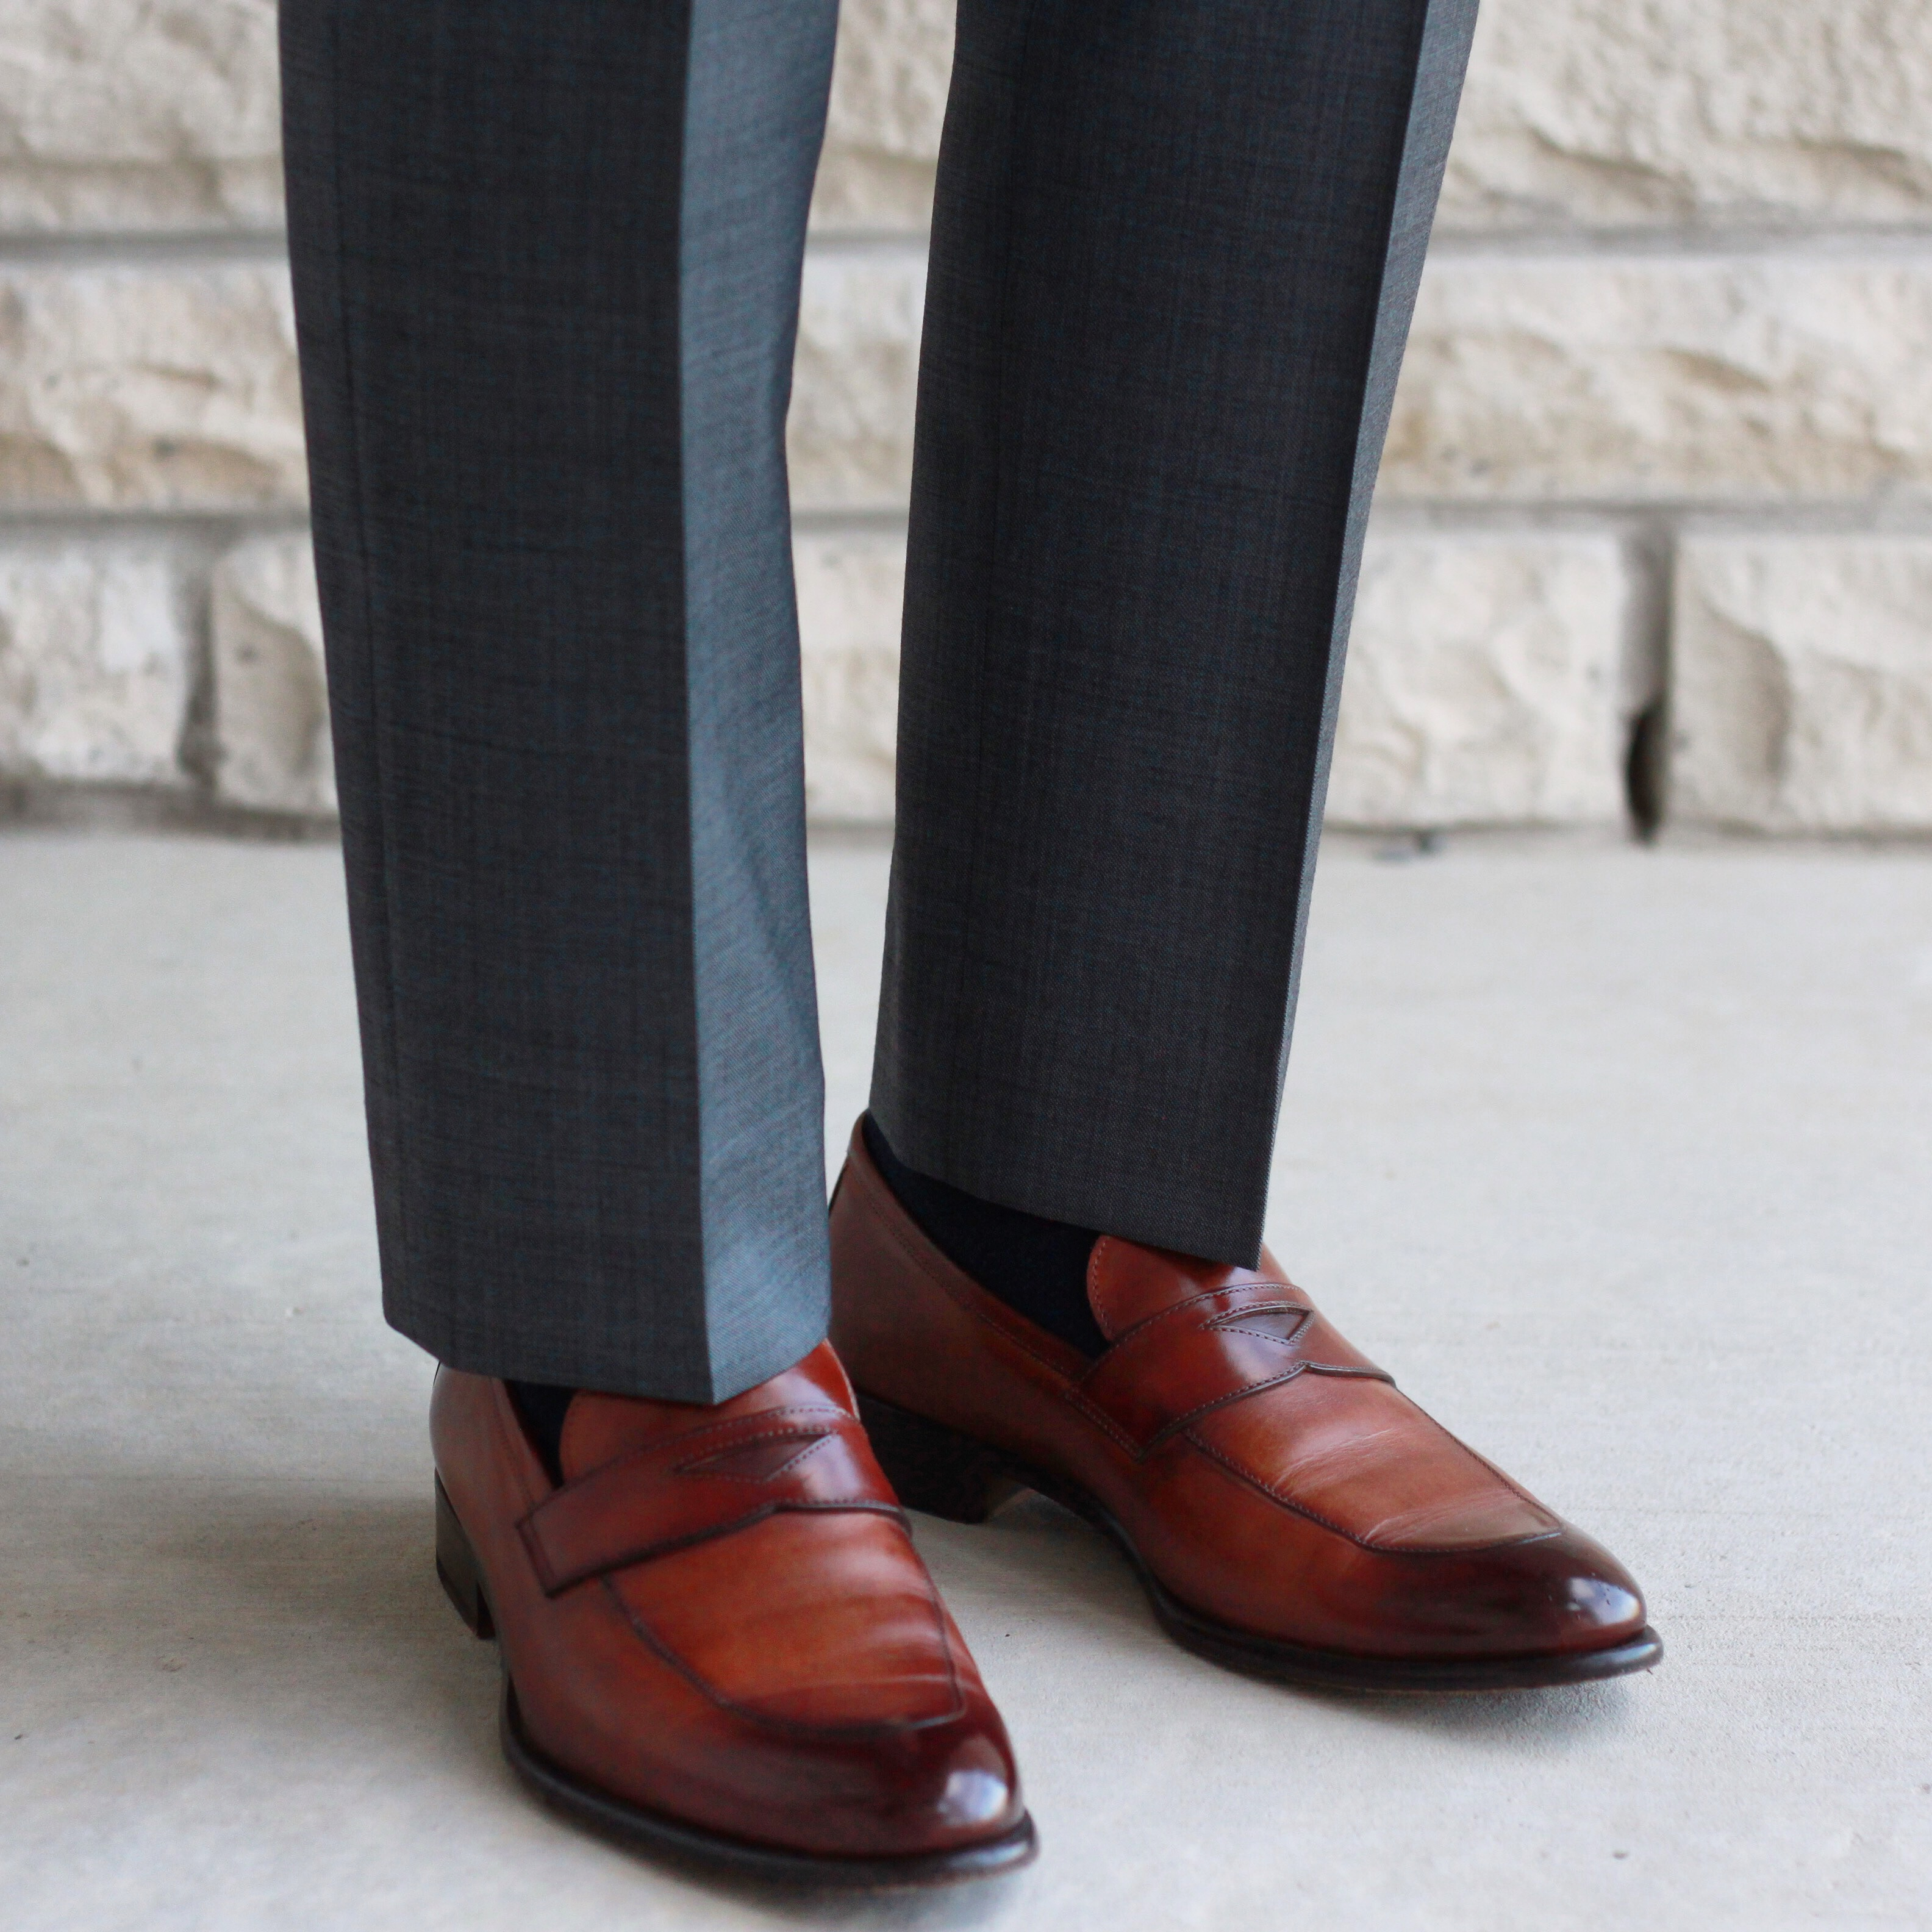 paul evans ny review, paul evans ny shoes, loafers, havana brown, product review